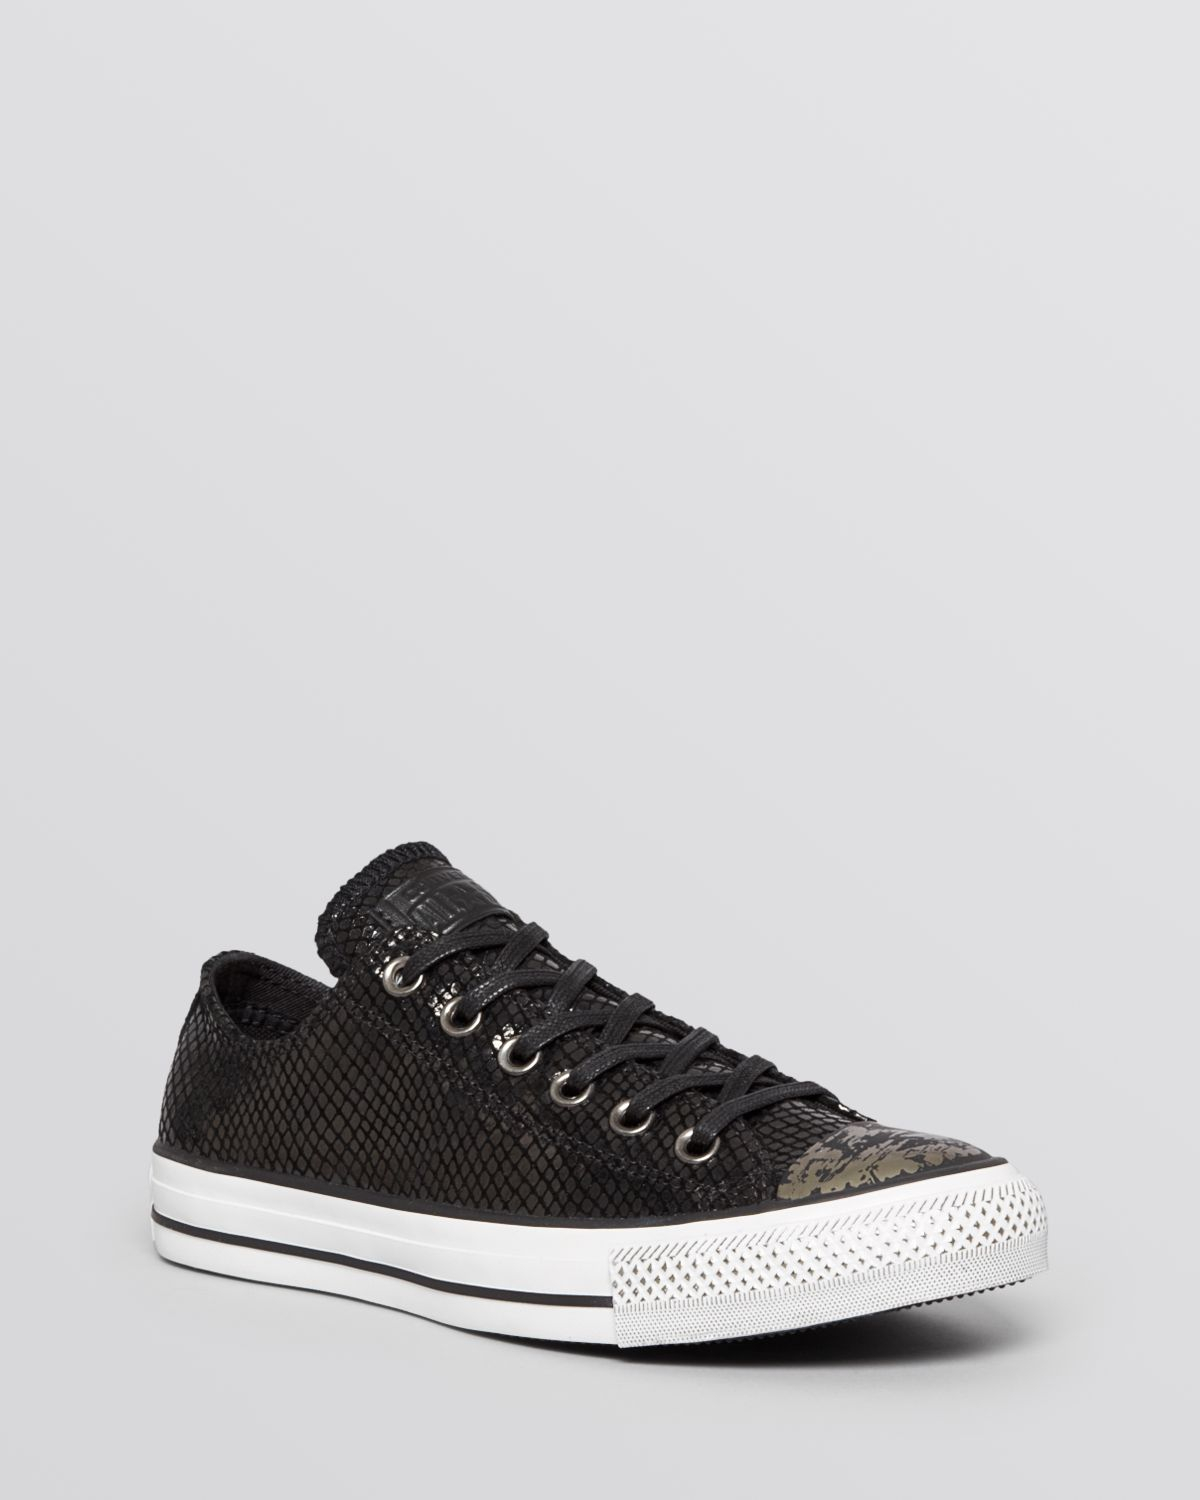 af5c354dfe9b67 Converse Flat Lace Up Sneakers - Low Top Metallic in Black - Lyst